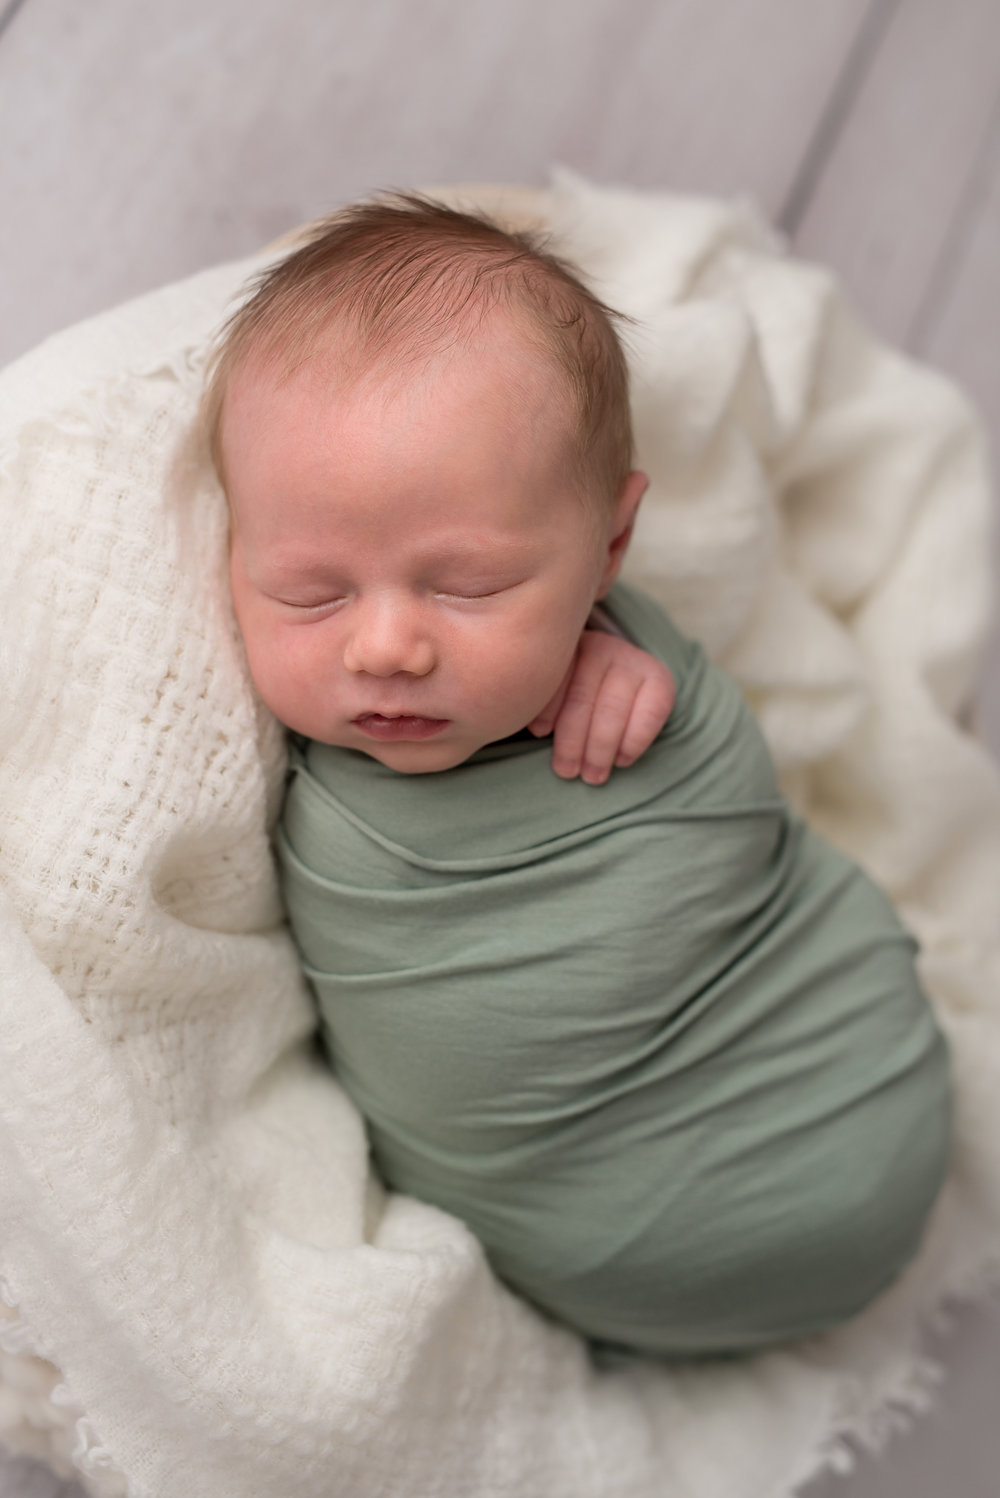 James-Island-Newborn-Photographer-Following-Seas-Photography-FSP_1500 copy.jpg